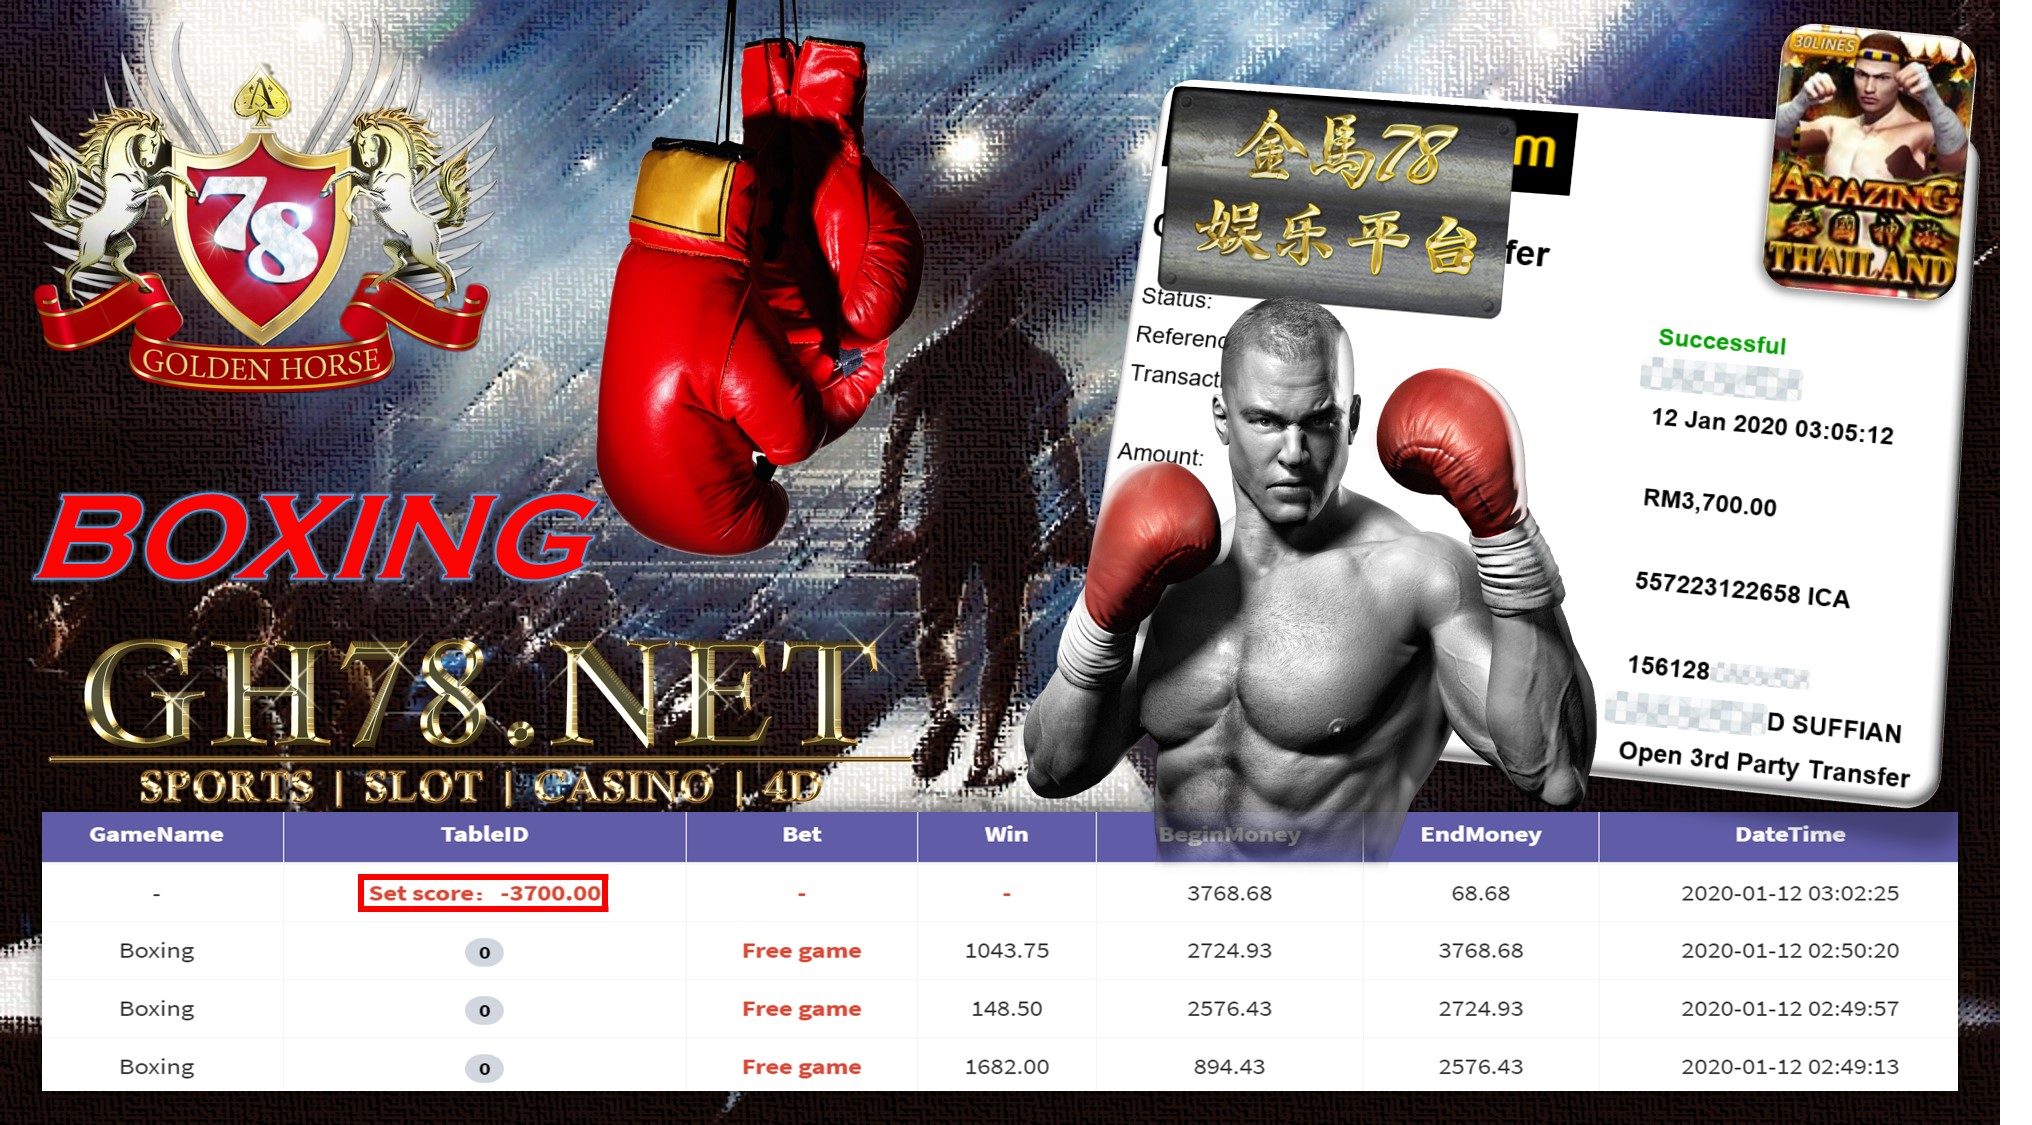 2020 NEW YEAR !!! MEMBER MAIN 918KISS FT.BOXING WITHDRAW RM3700 !!!